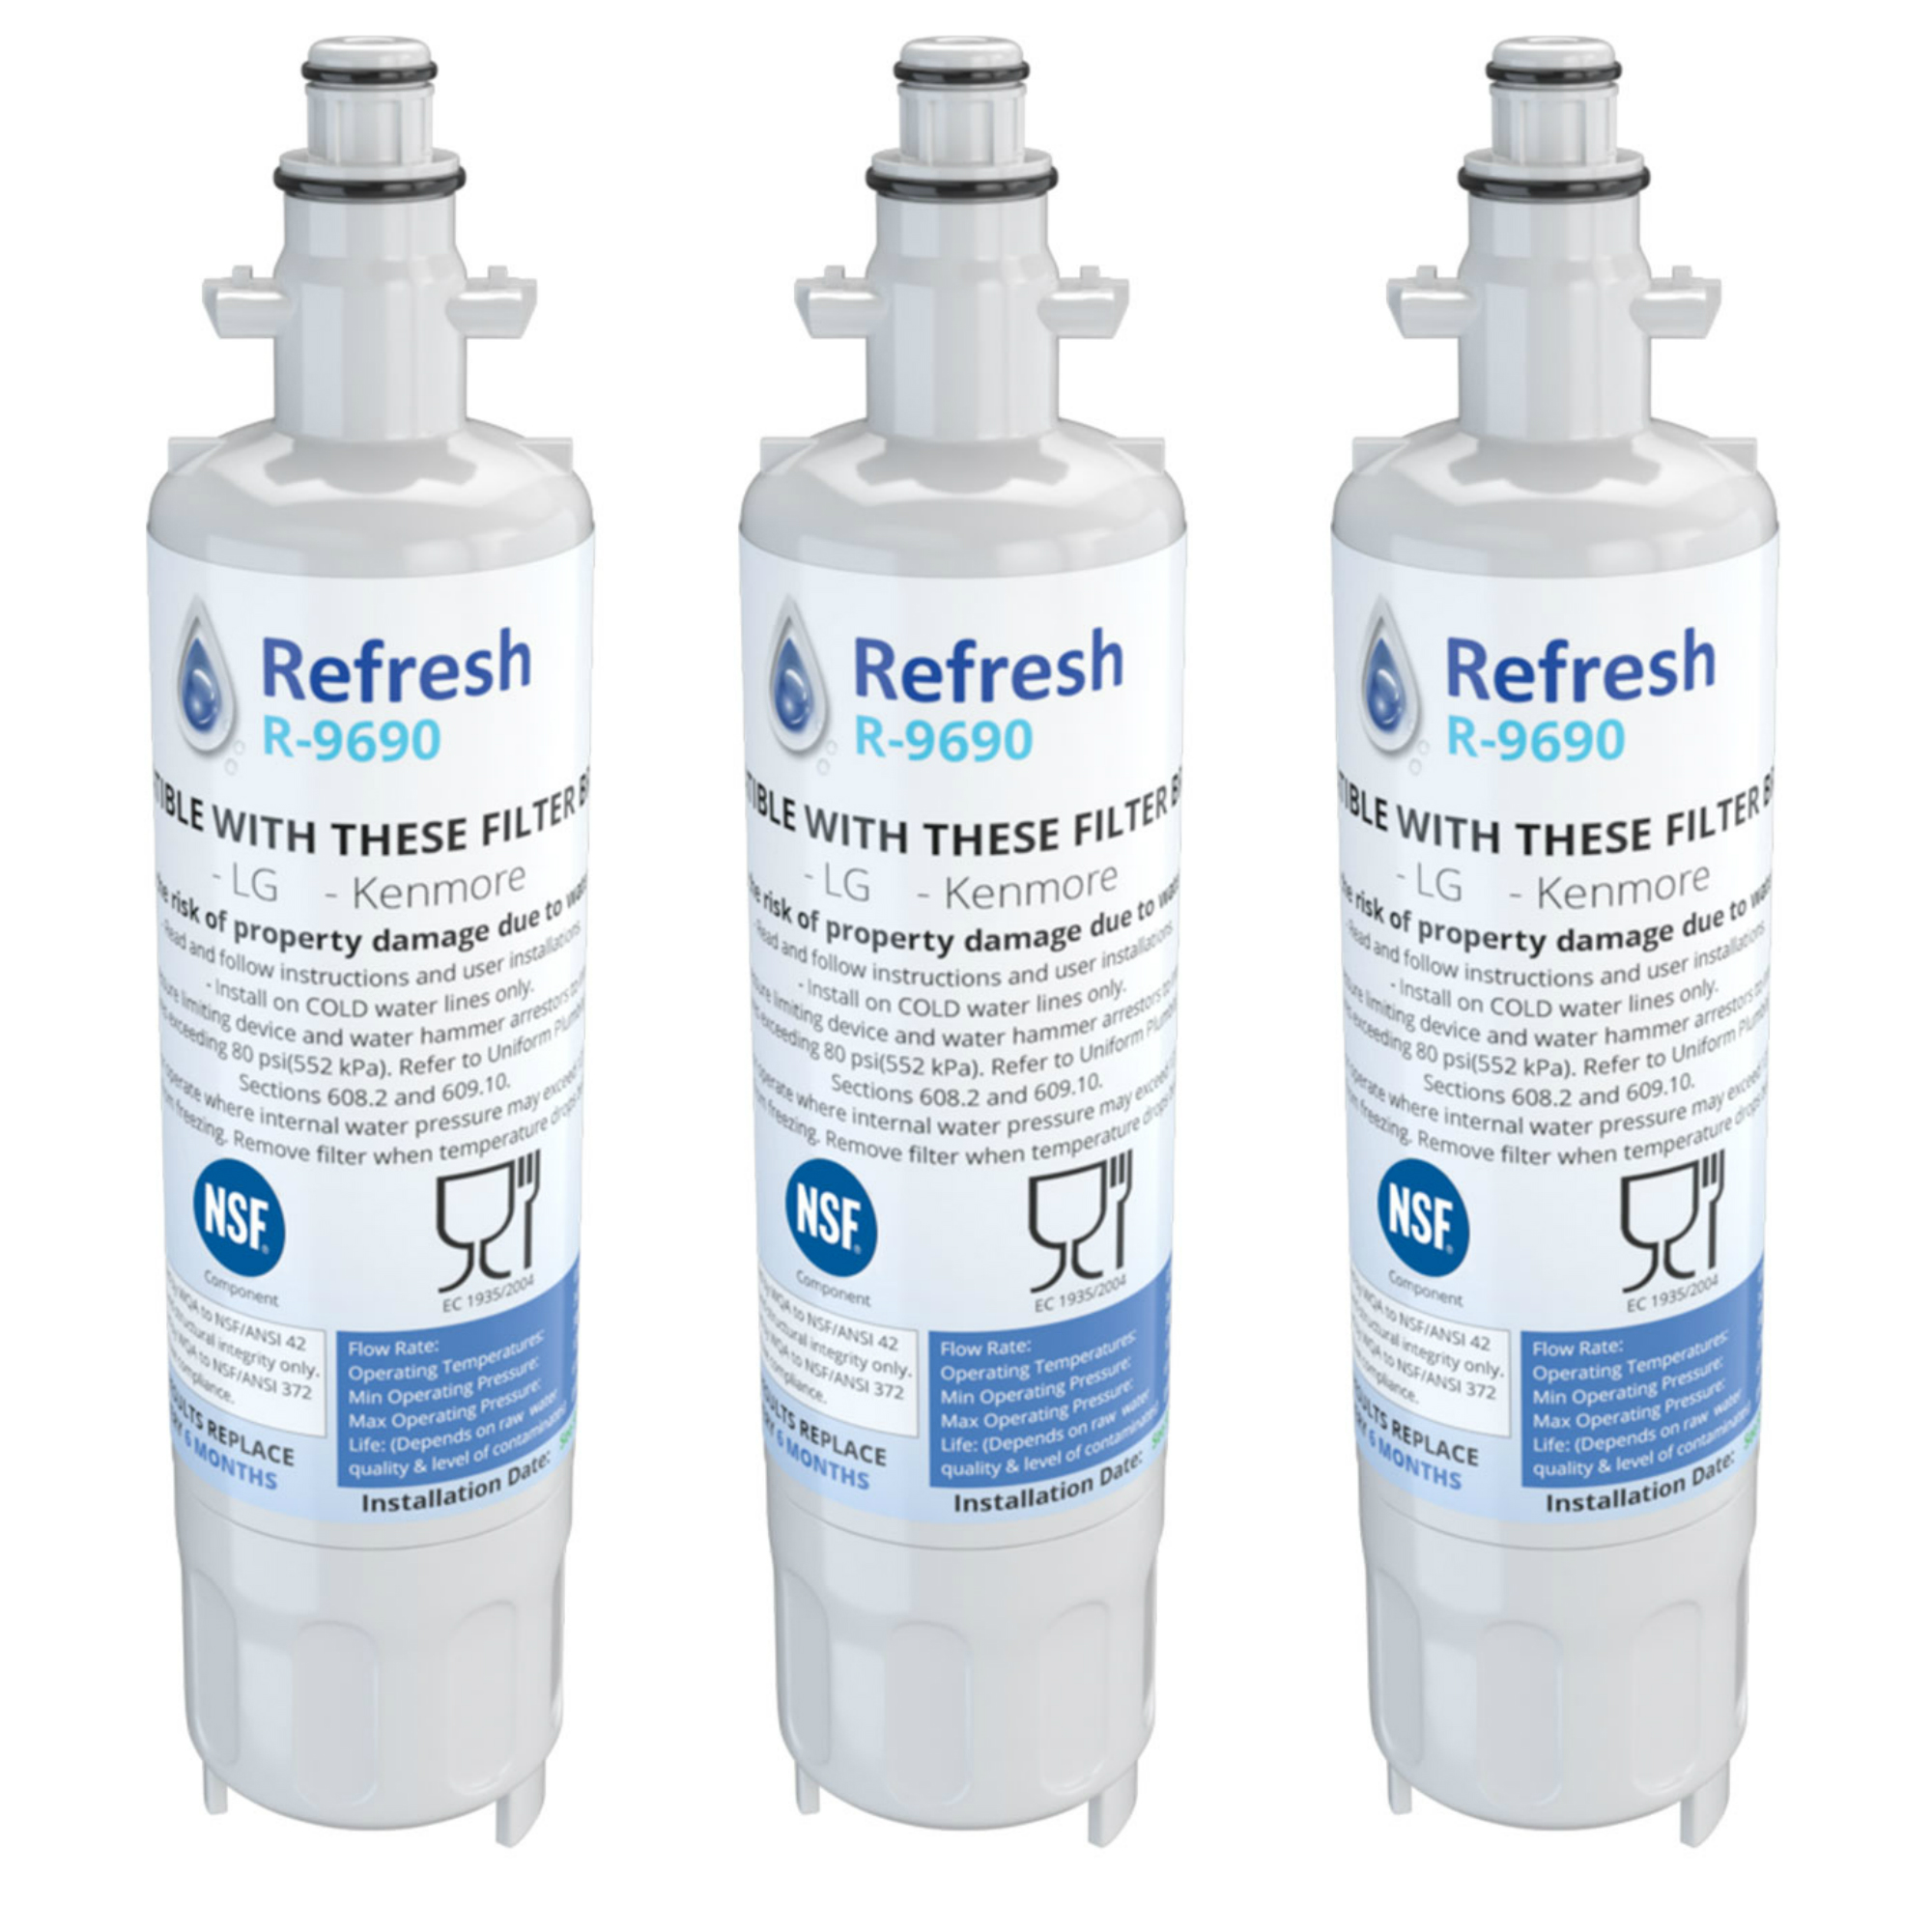 Replacement For LG WLF-01 Refrigerator Water Filter - by Refresh (3 Pack)